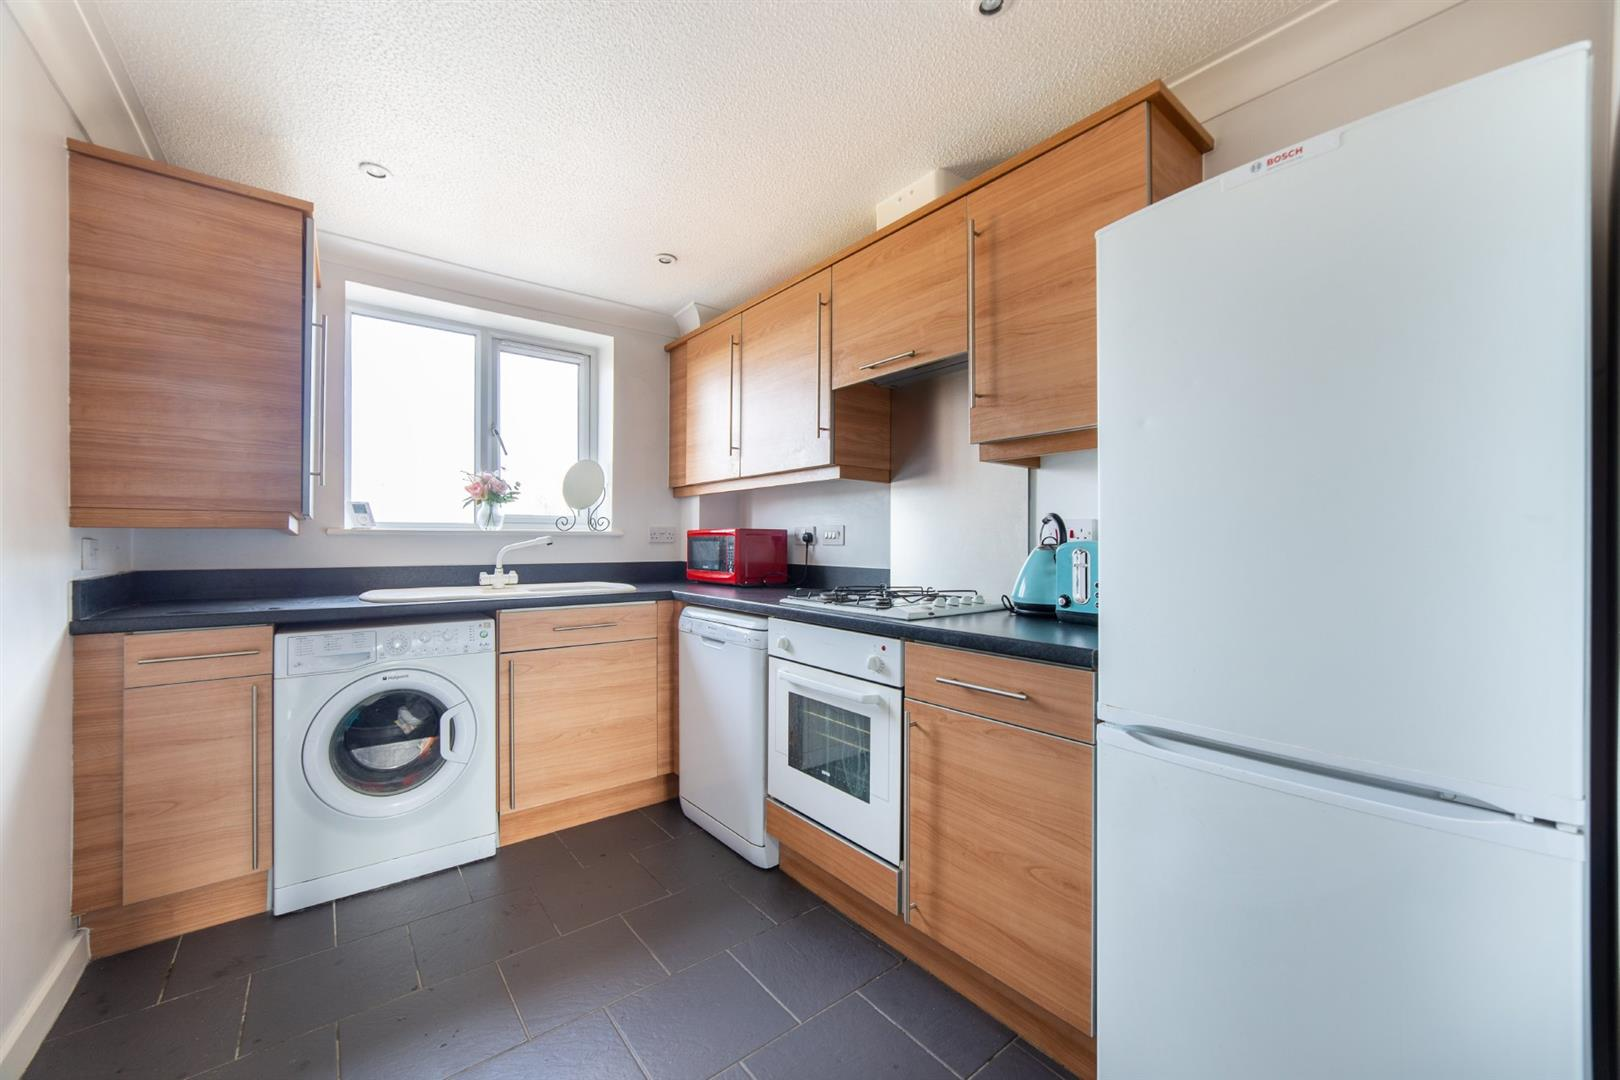 2 bed apartment for sale in Newcastle Upon Tyne, NE6 5BJ 2